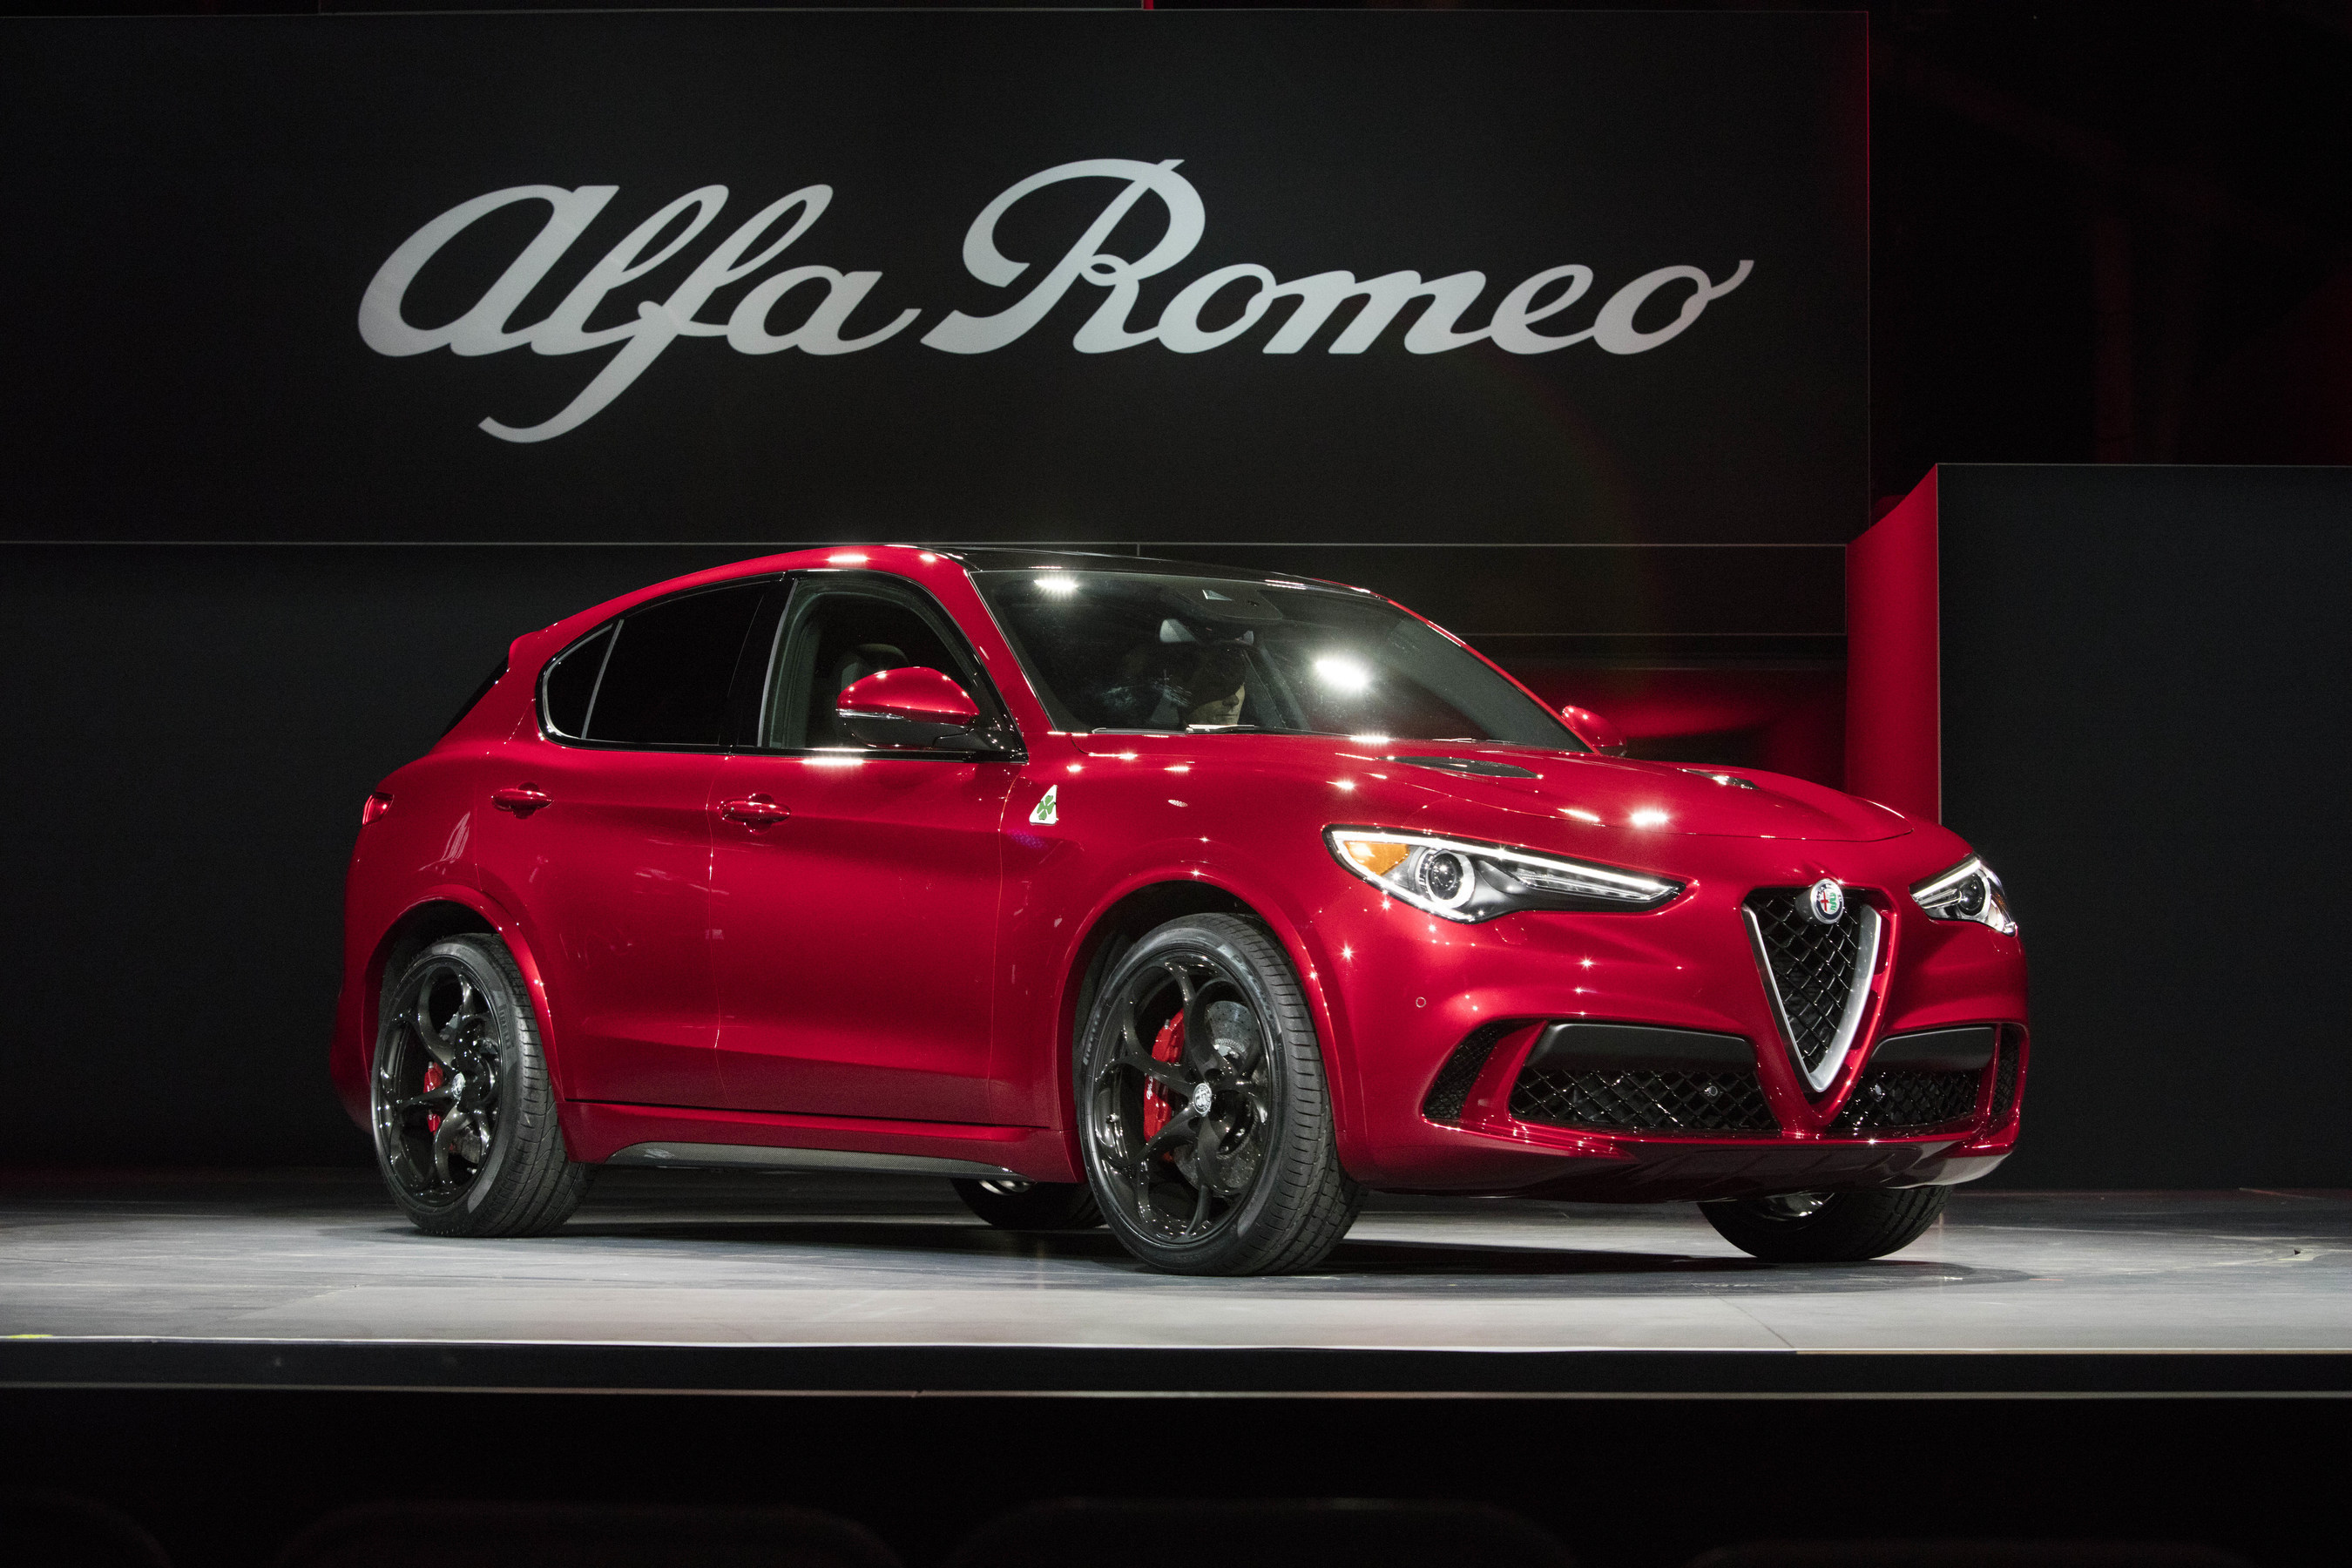 """All-new 2018 Alfa Romeo Stelvio SUV Wins Cars.com's First-Ever """"Best in Show"""" Award at 2016 L.A. Auto Show"""